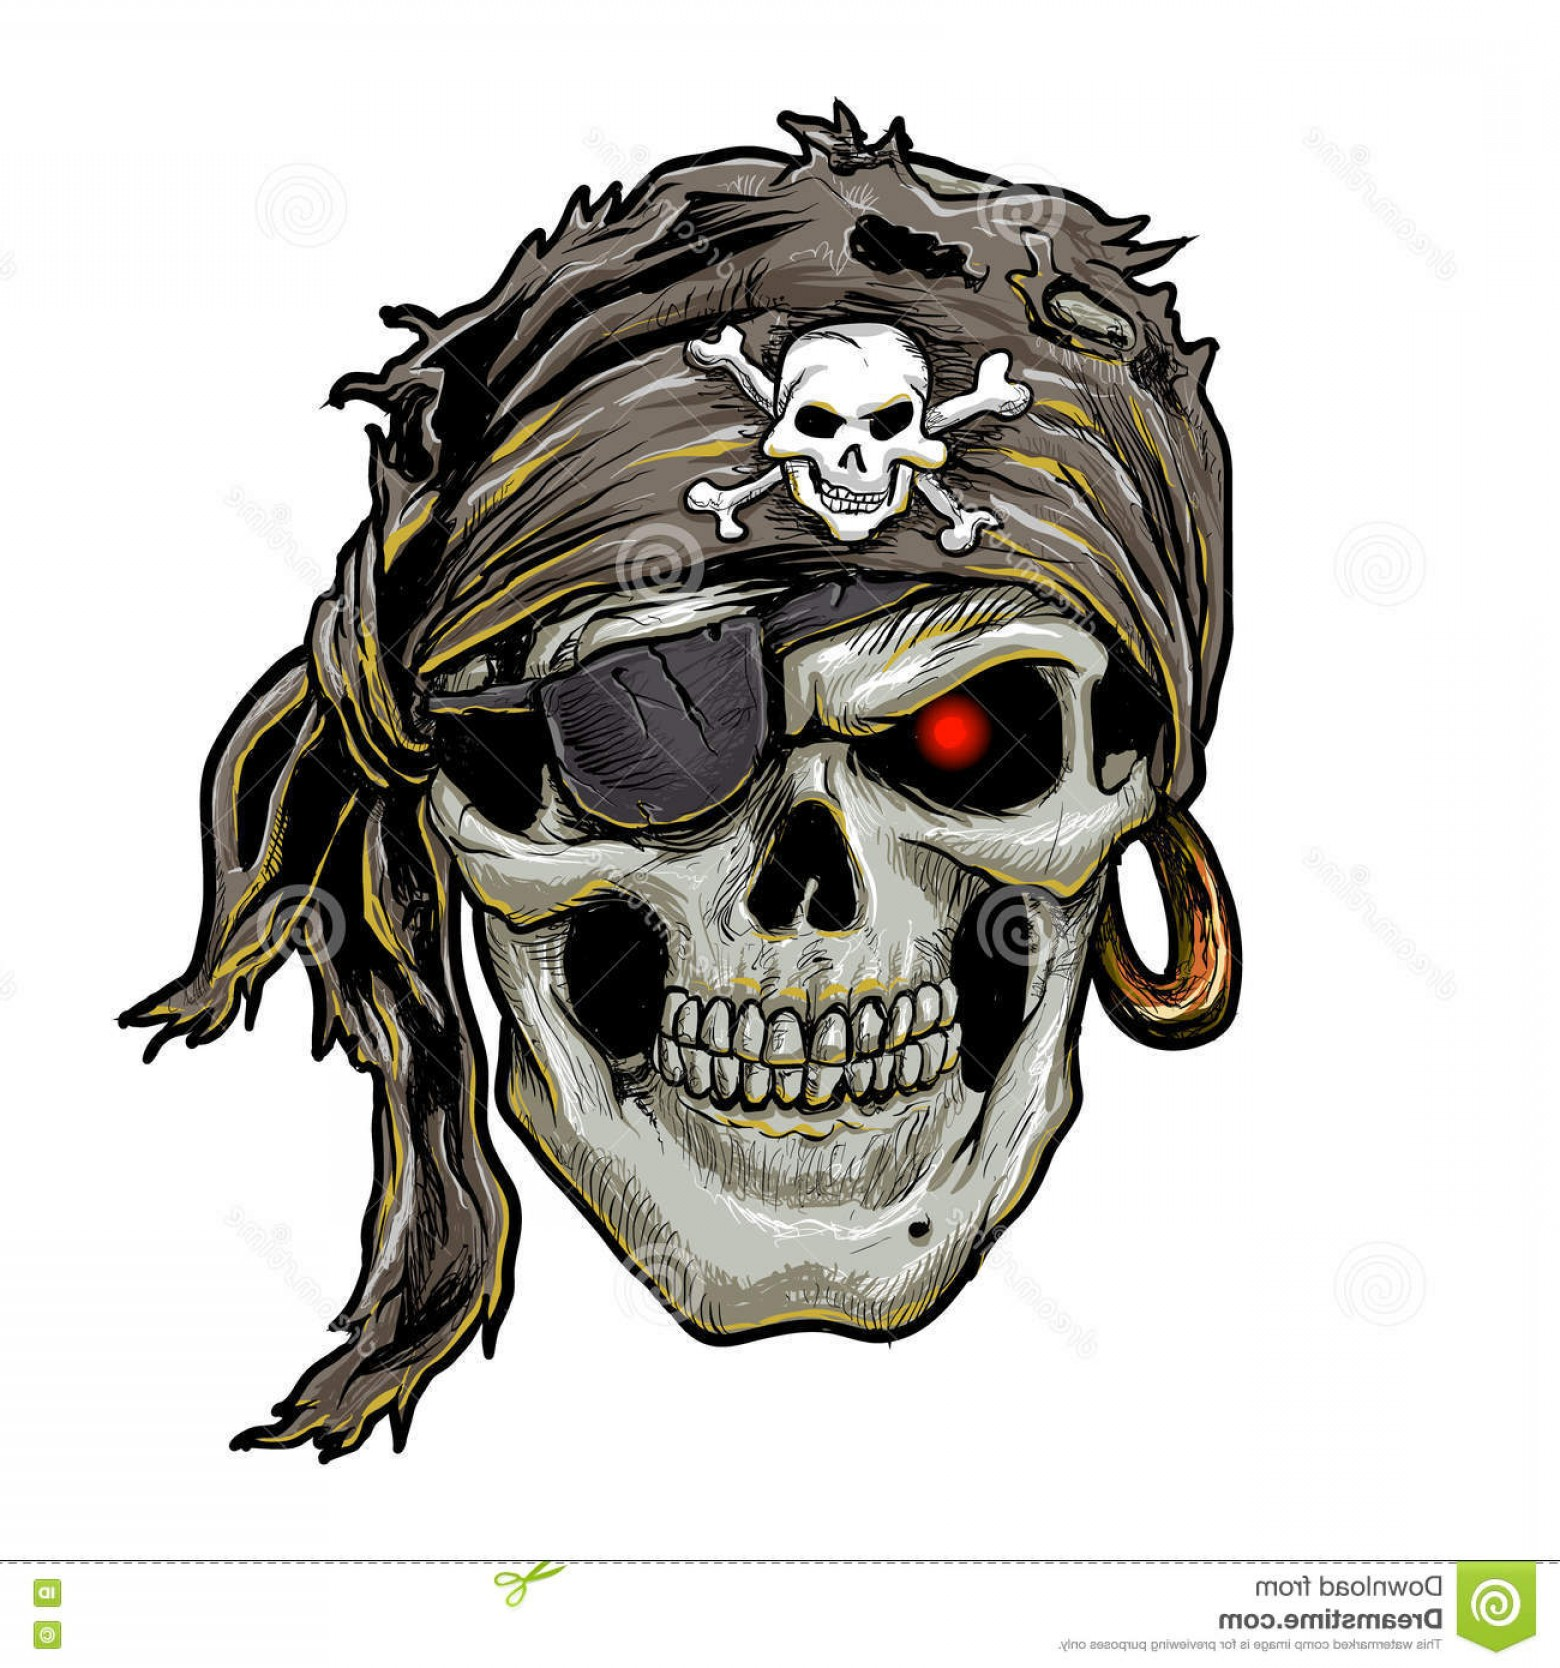 1560x1668 Stock Illustration Pirate Skull Black Bandana Skull Art Vector